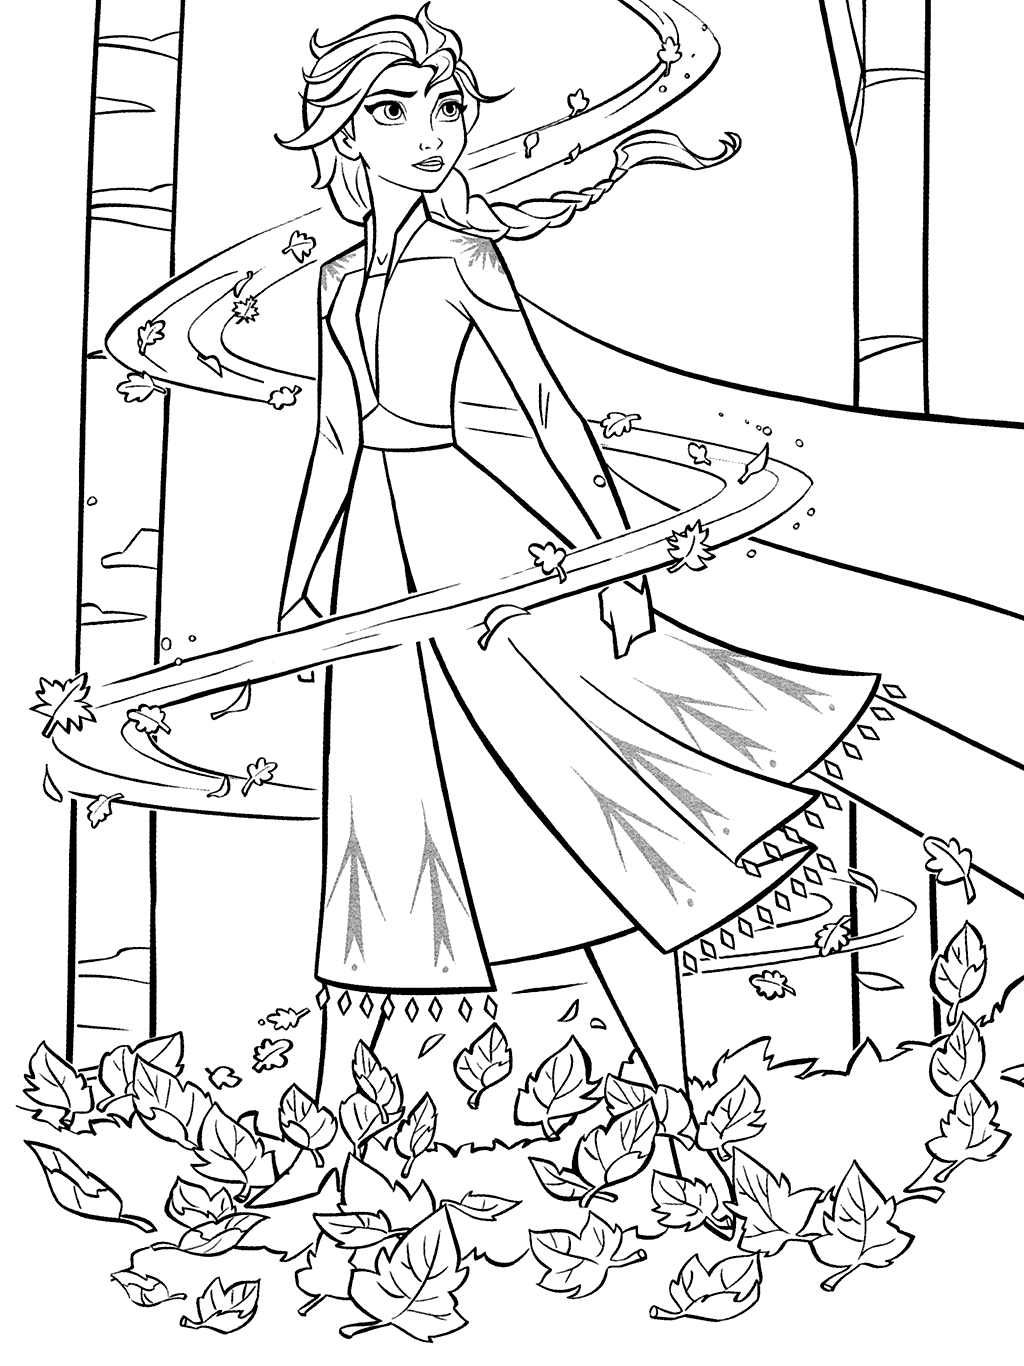 Elsa Changes The Weather Coloring Page